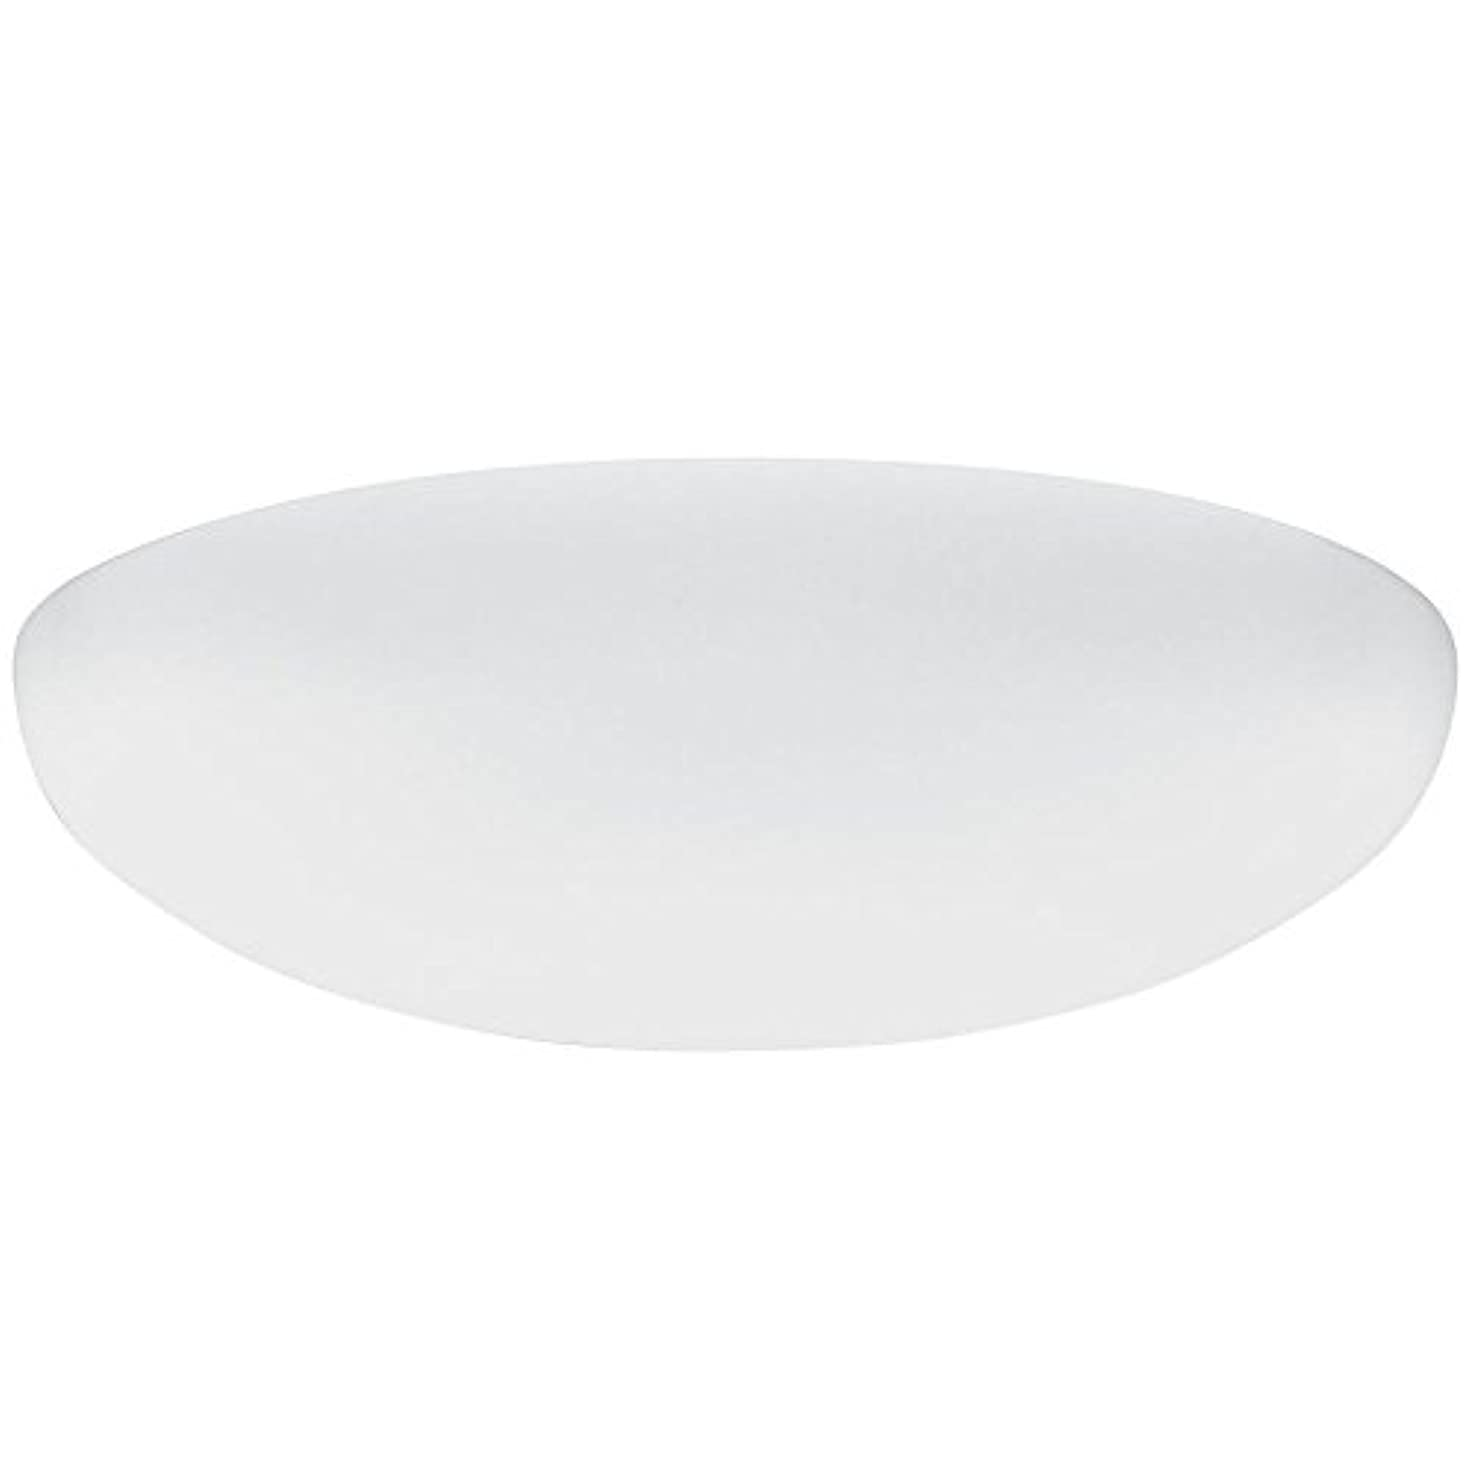 Lithonia Lighting DFMLRL14 M4 Replacement Diffuser, 14, White by Lithonia Lighting